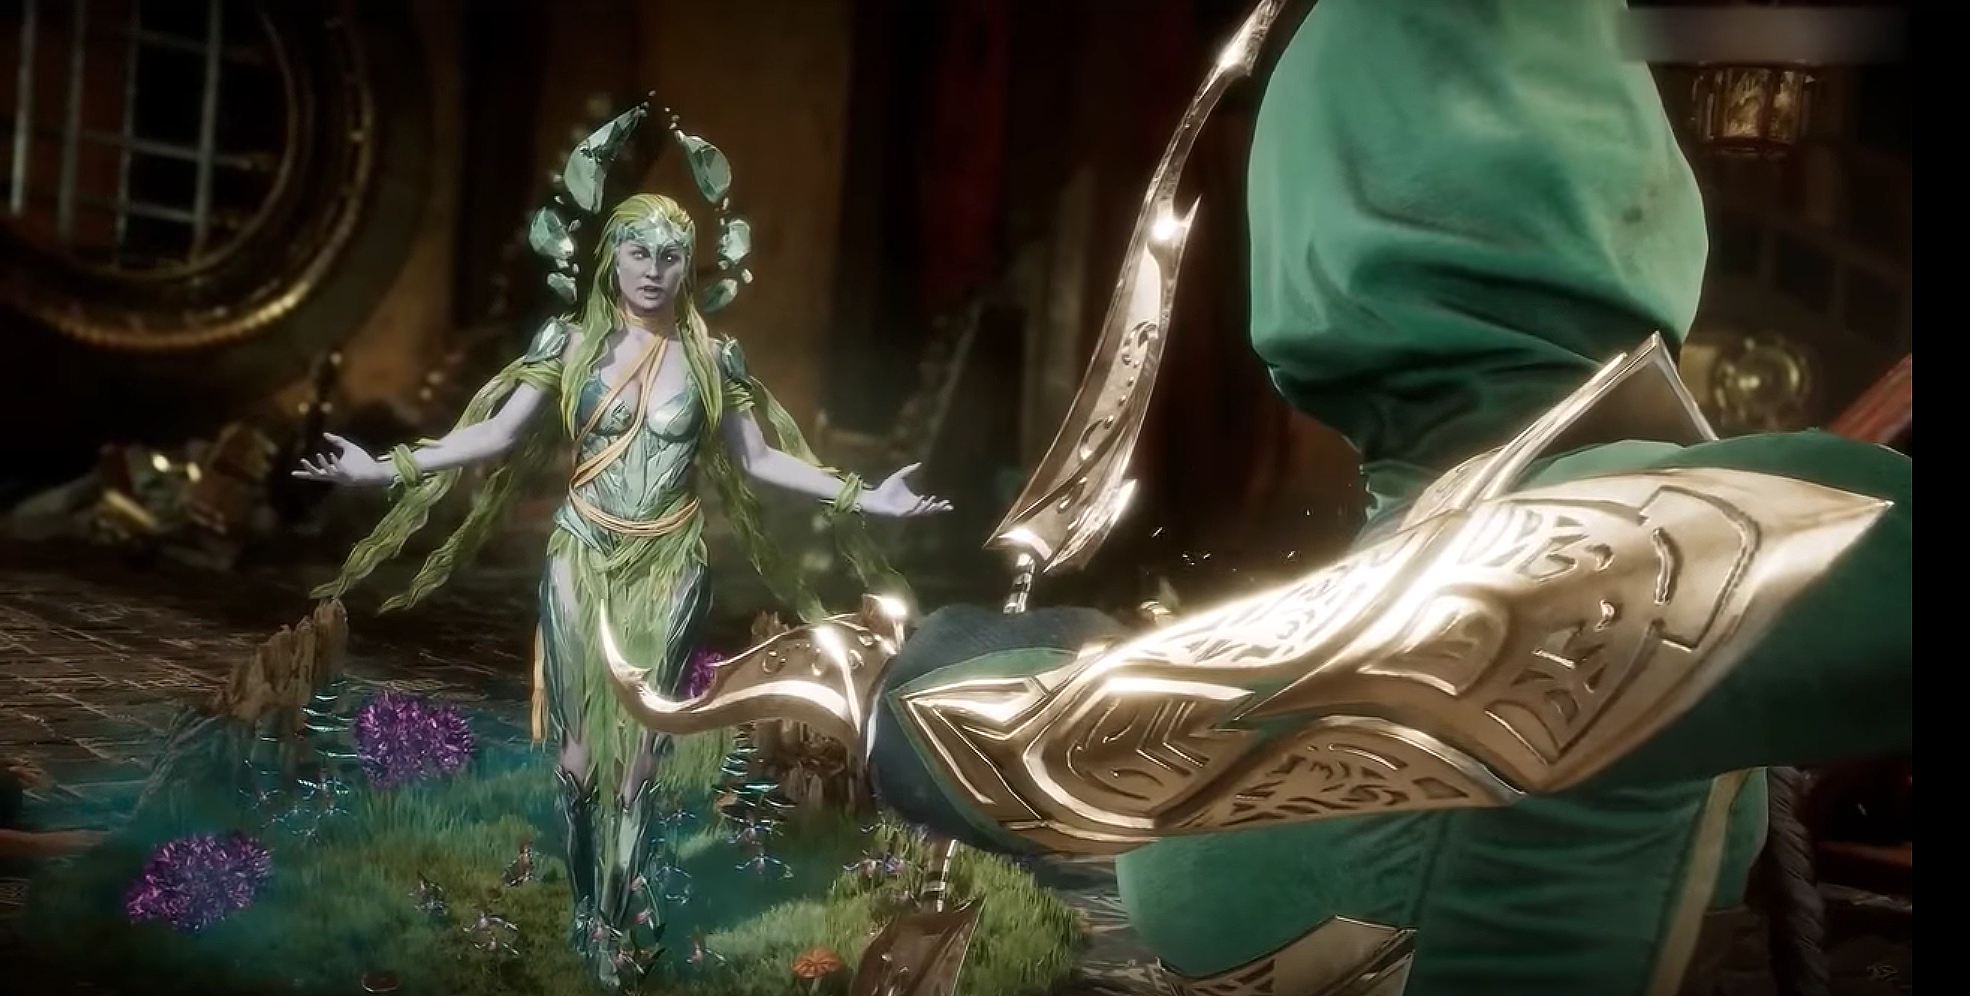 New 'Mortal Kombat 11' Trailer Reveals Cetrion Is a Playable